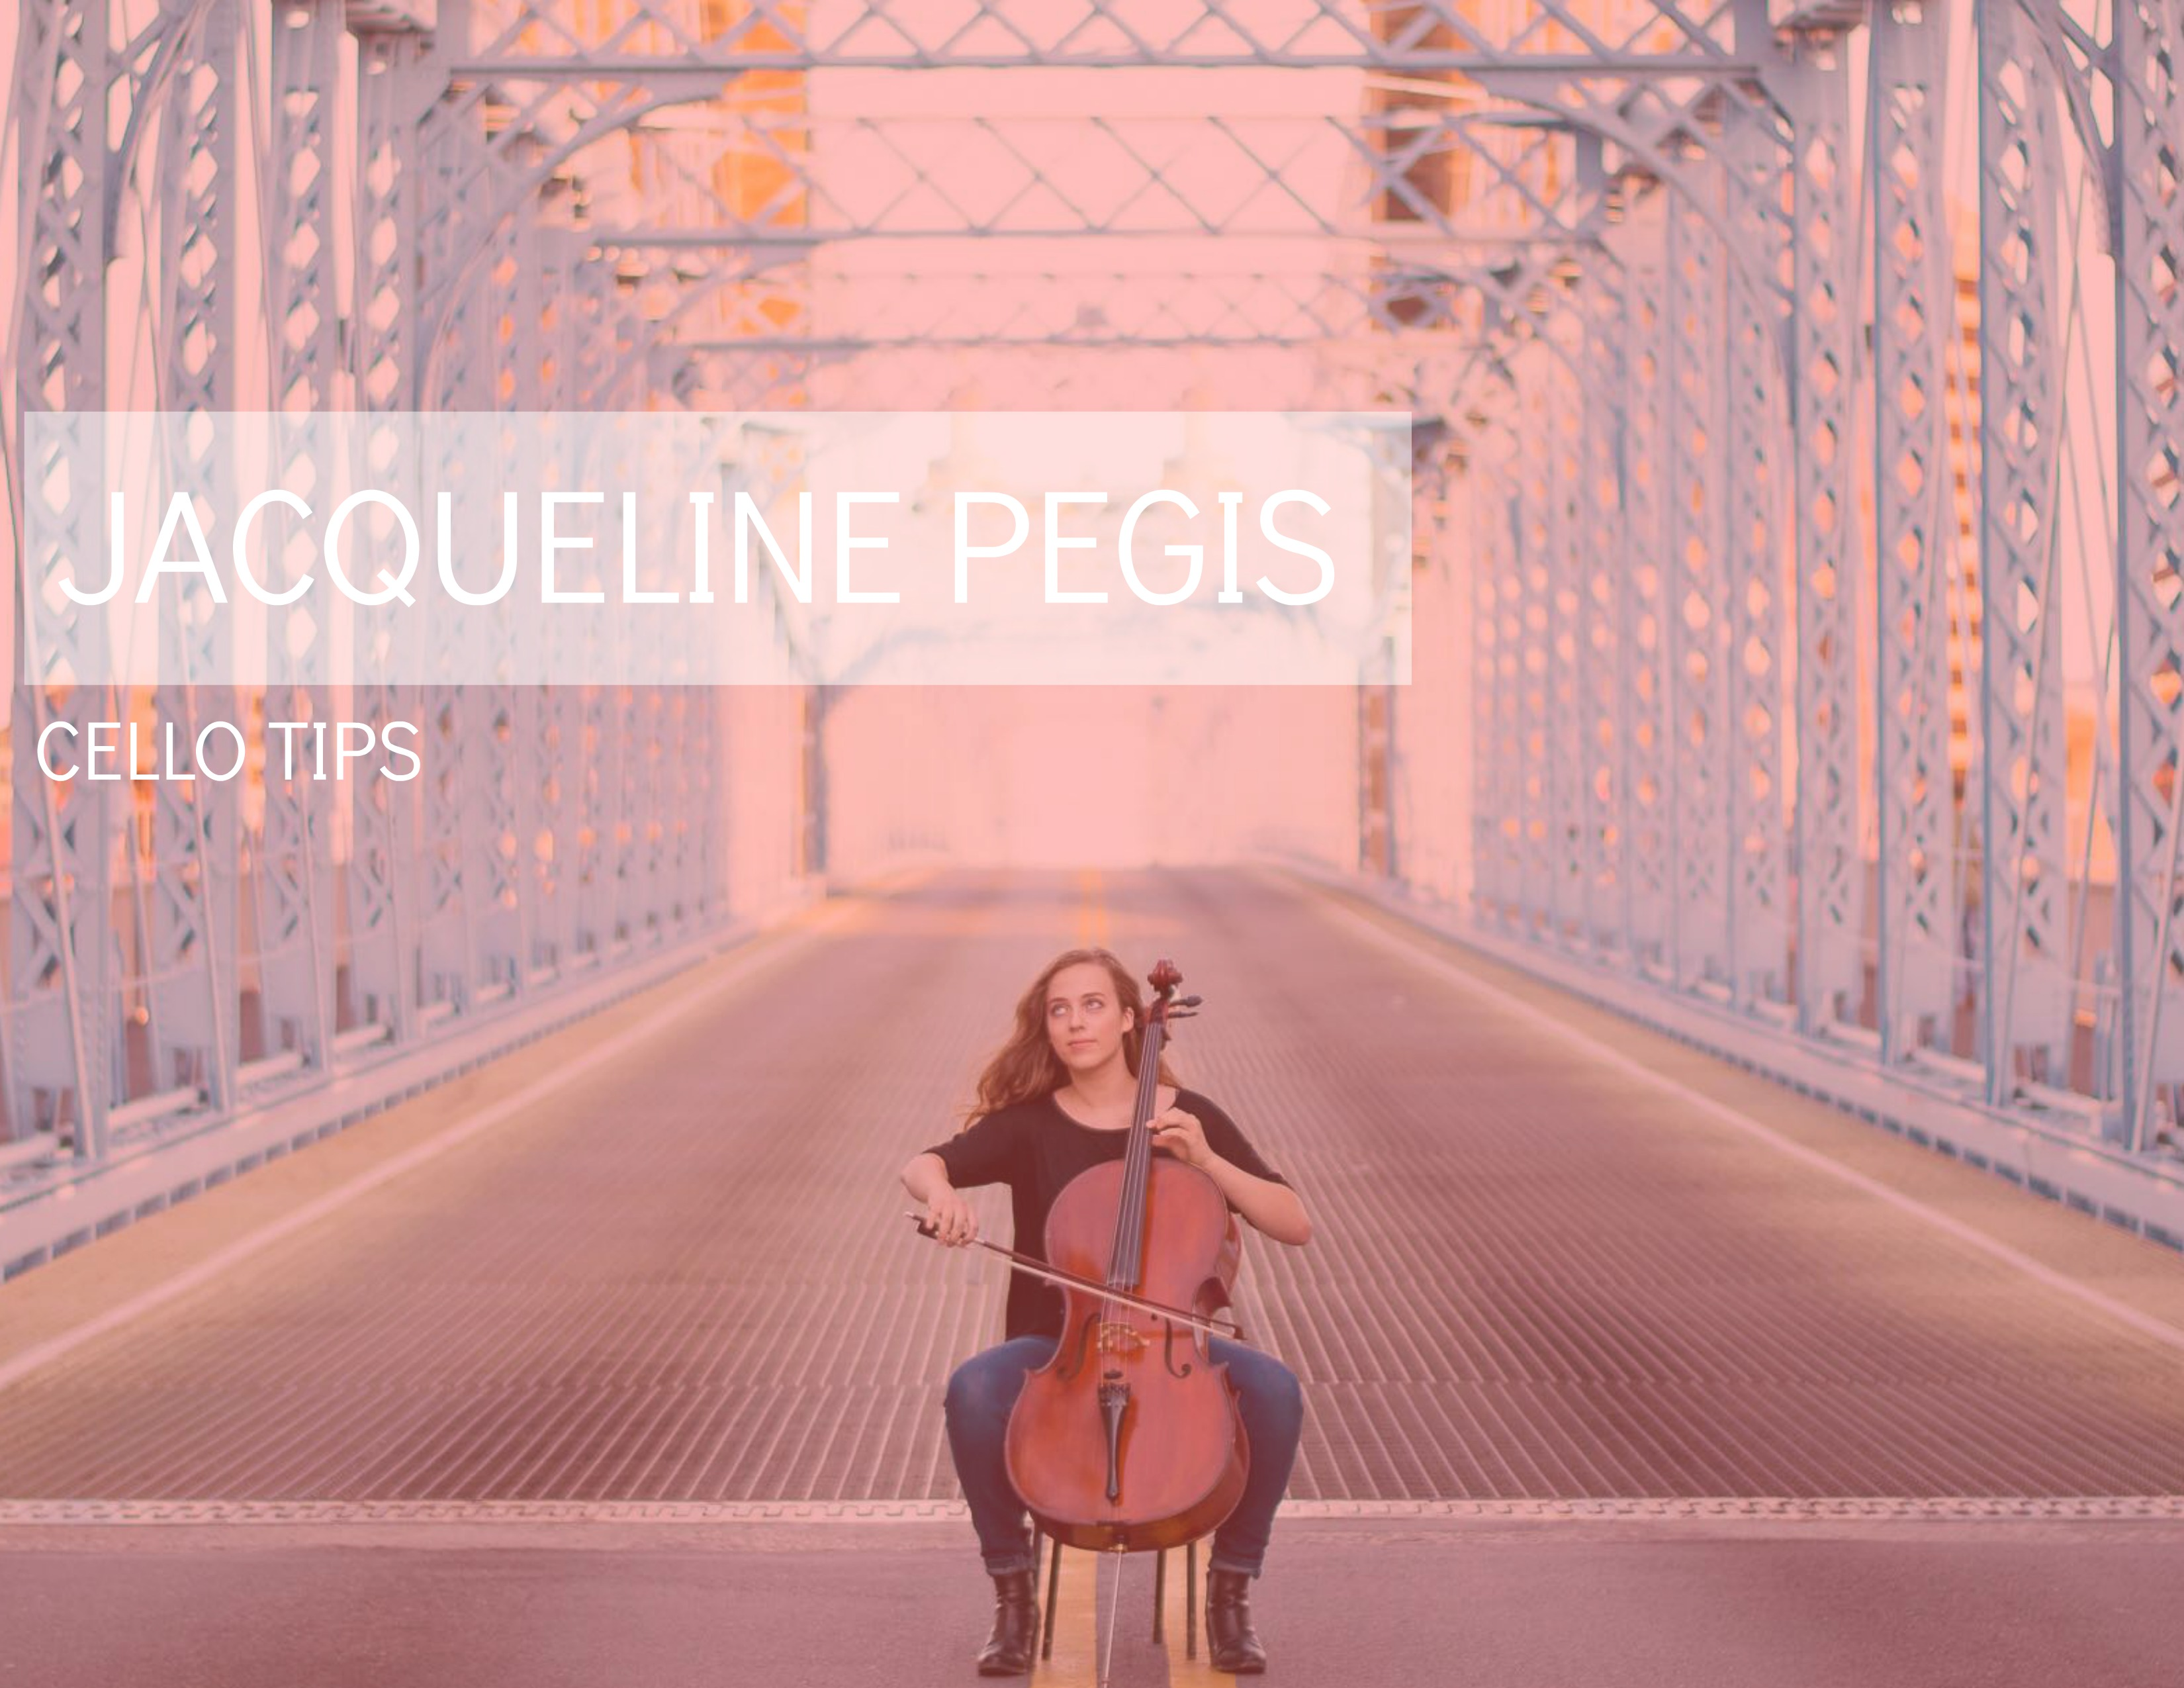 Jacqueline Pegis cello tips